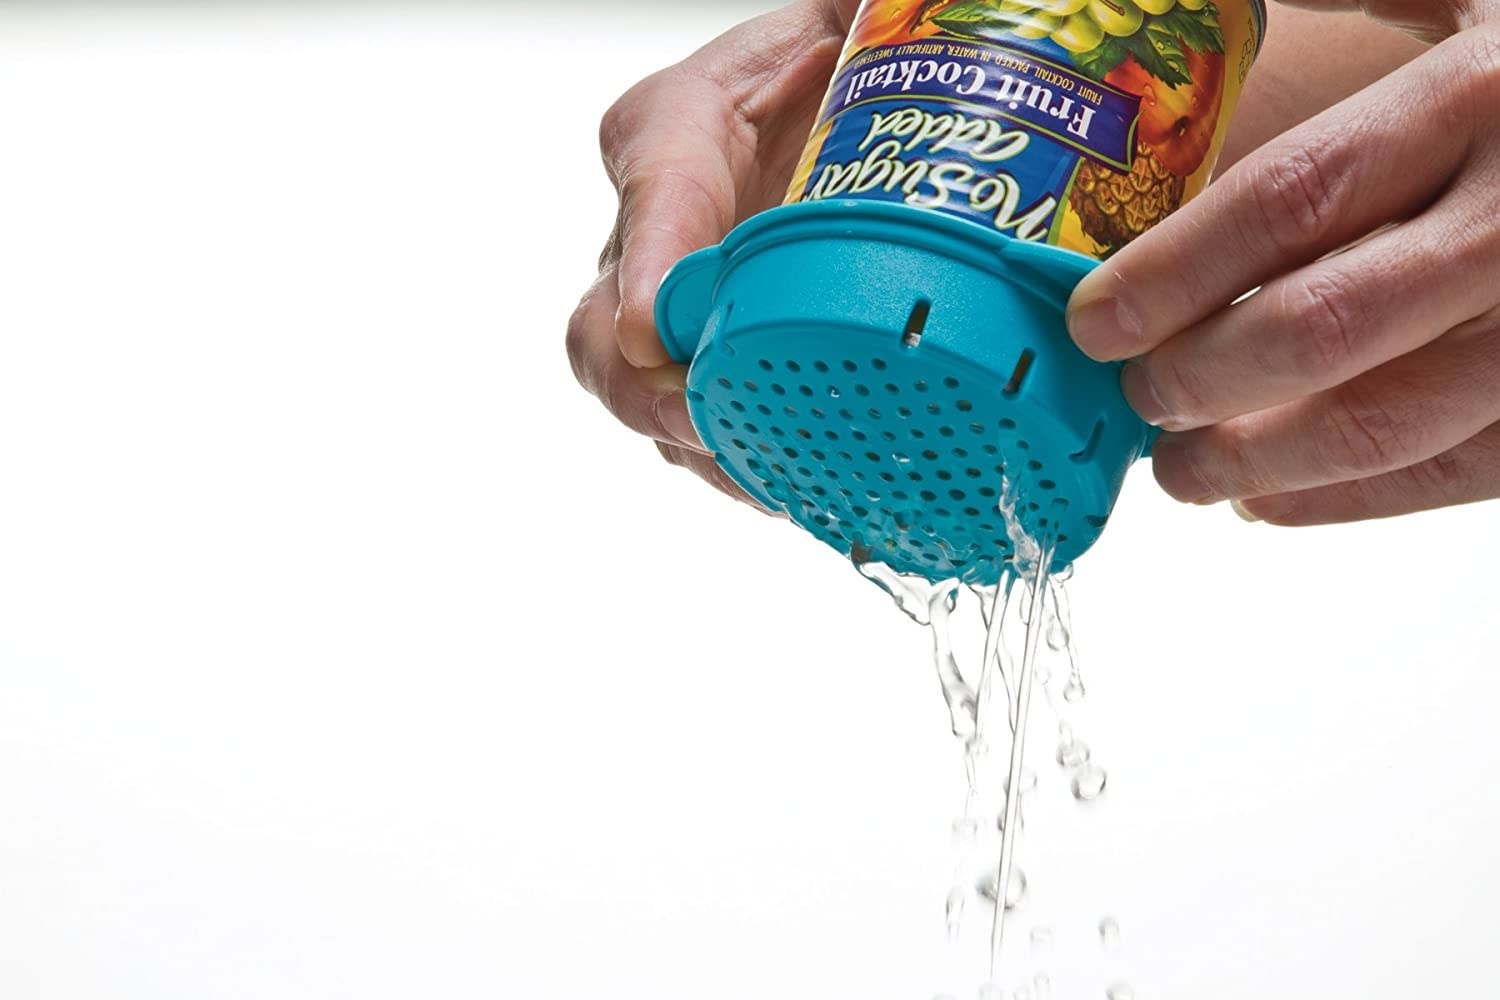 person draining water from can using colander